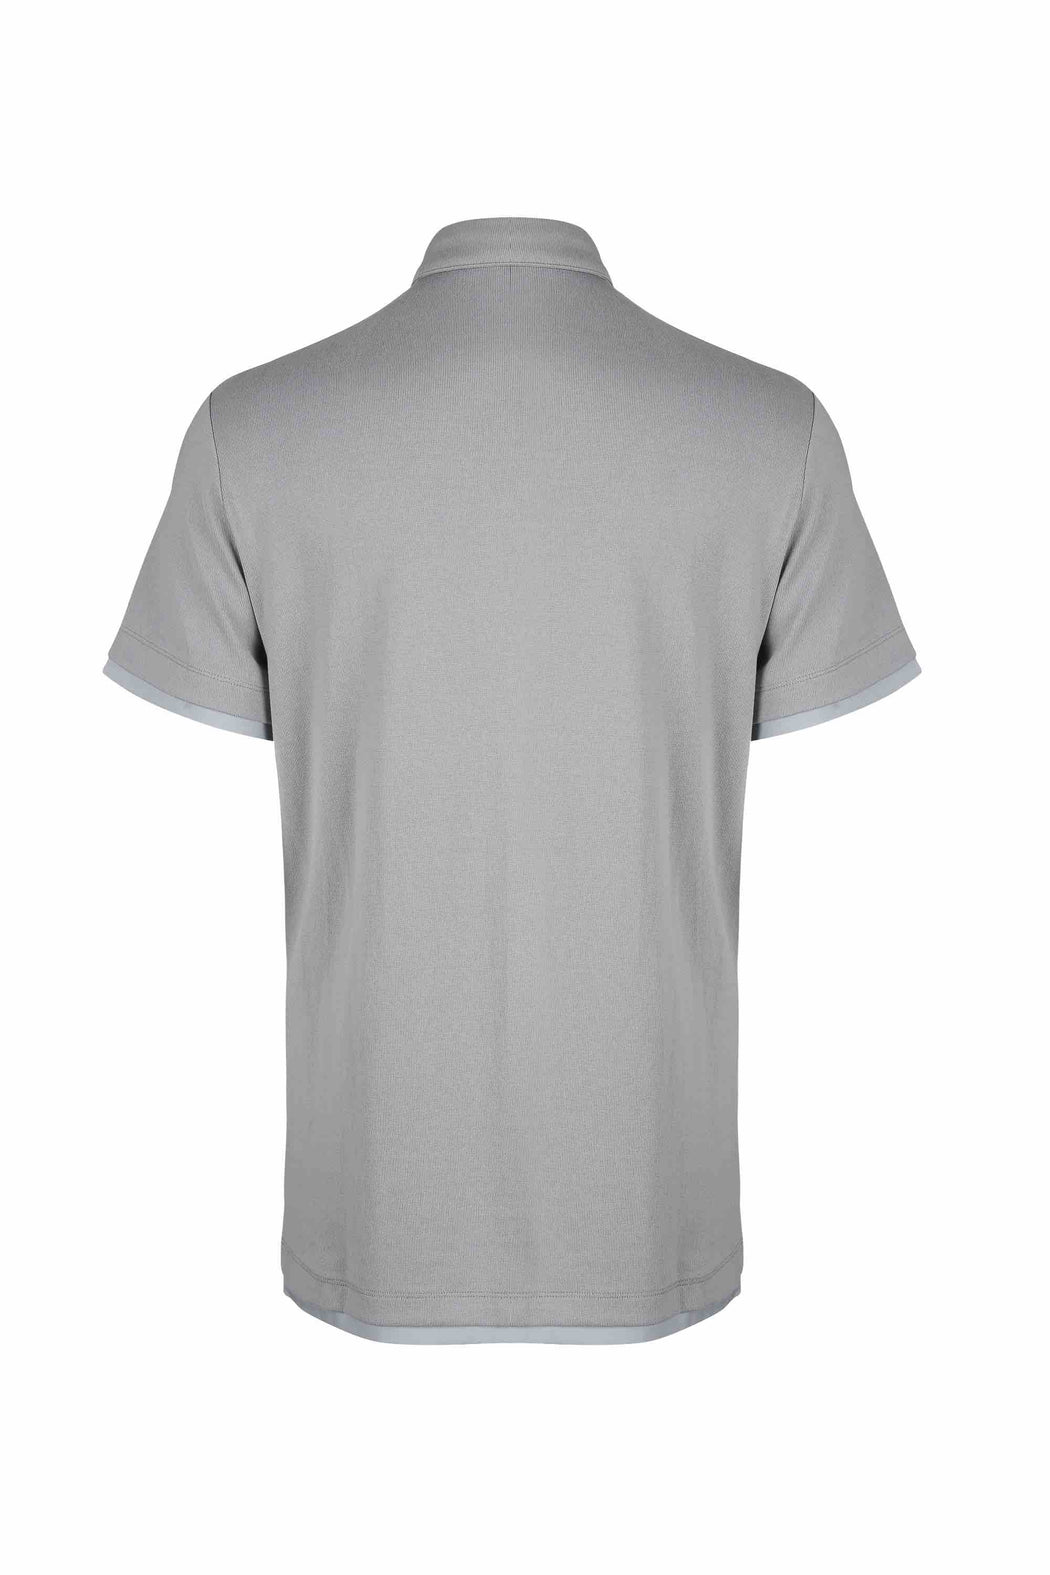 Back view of Men Contrast Polo Shirt, made with Organic Cotton in Grey